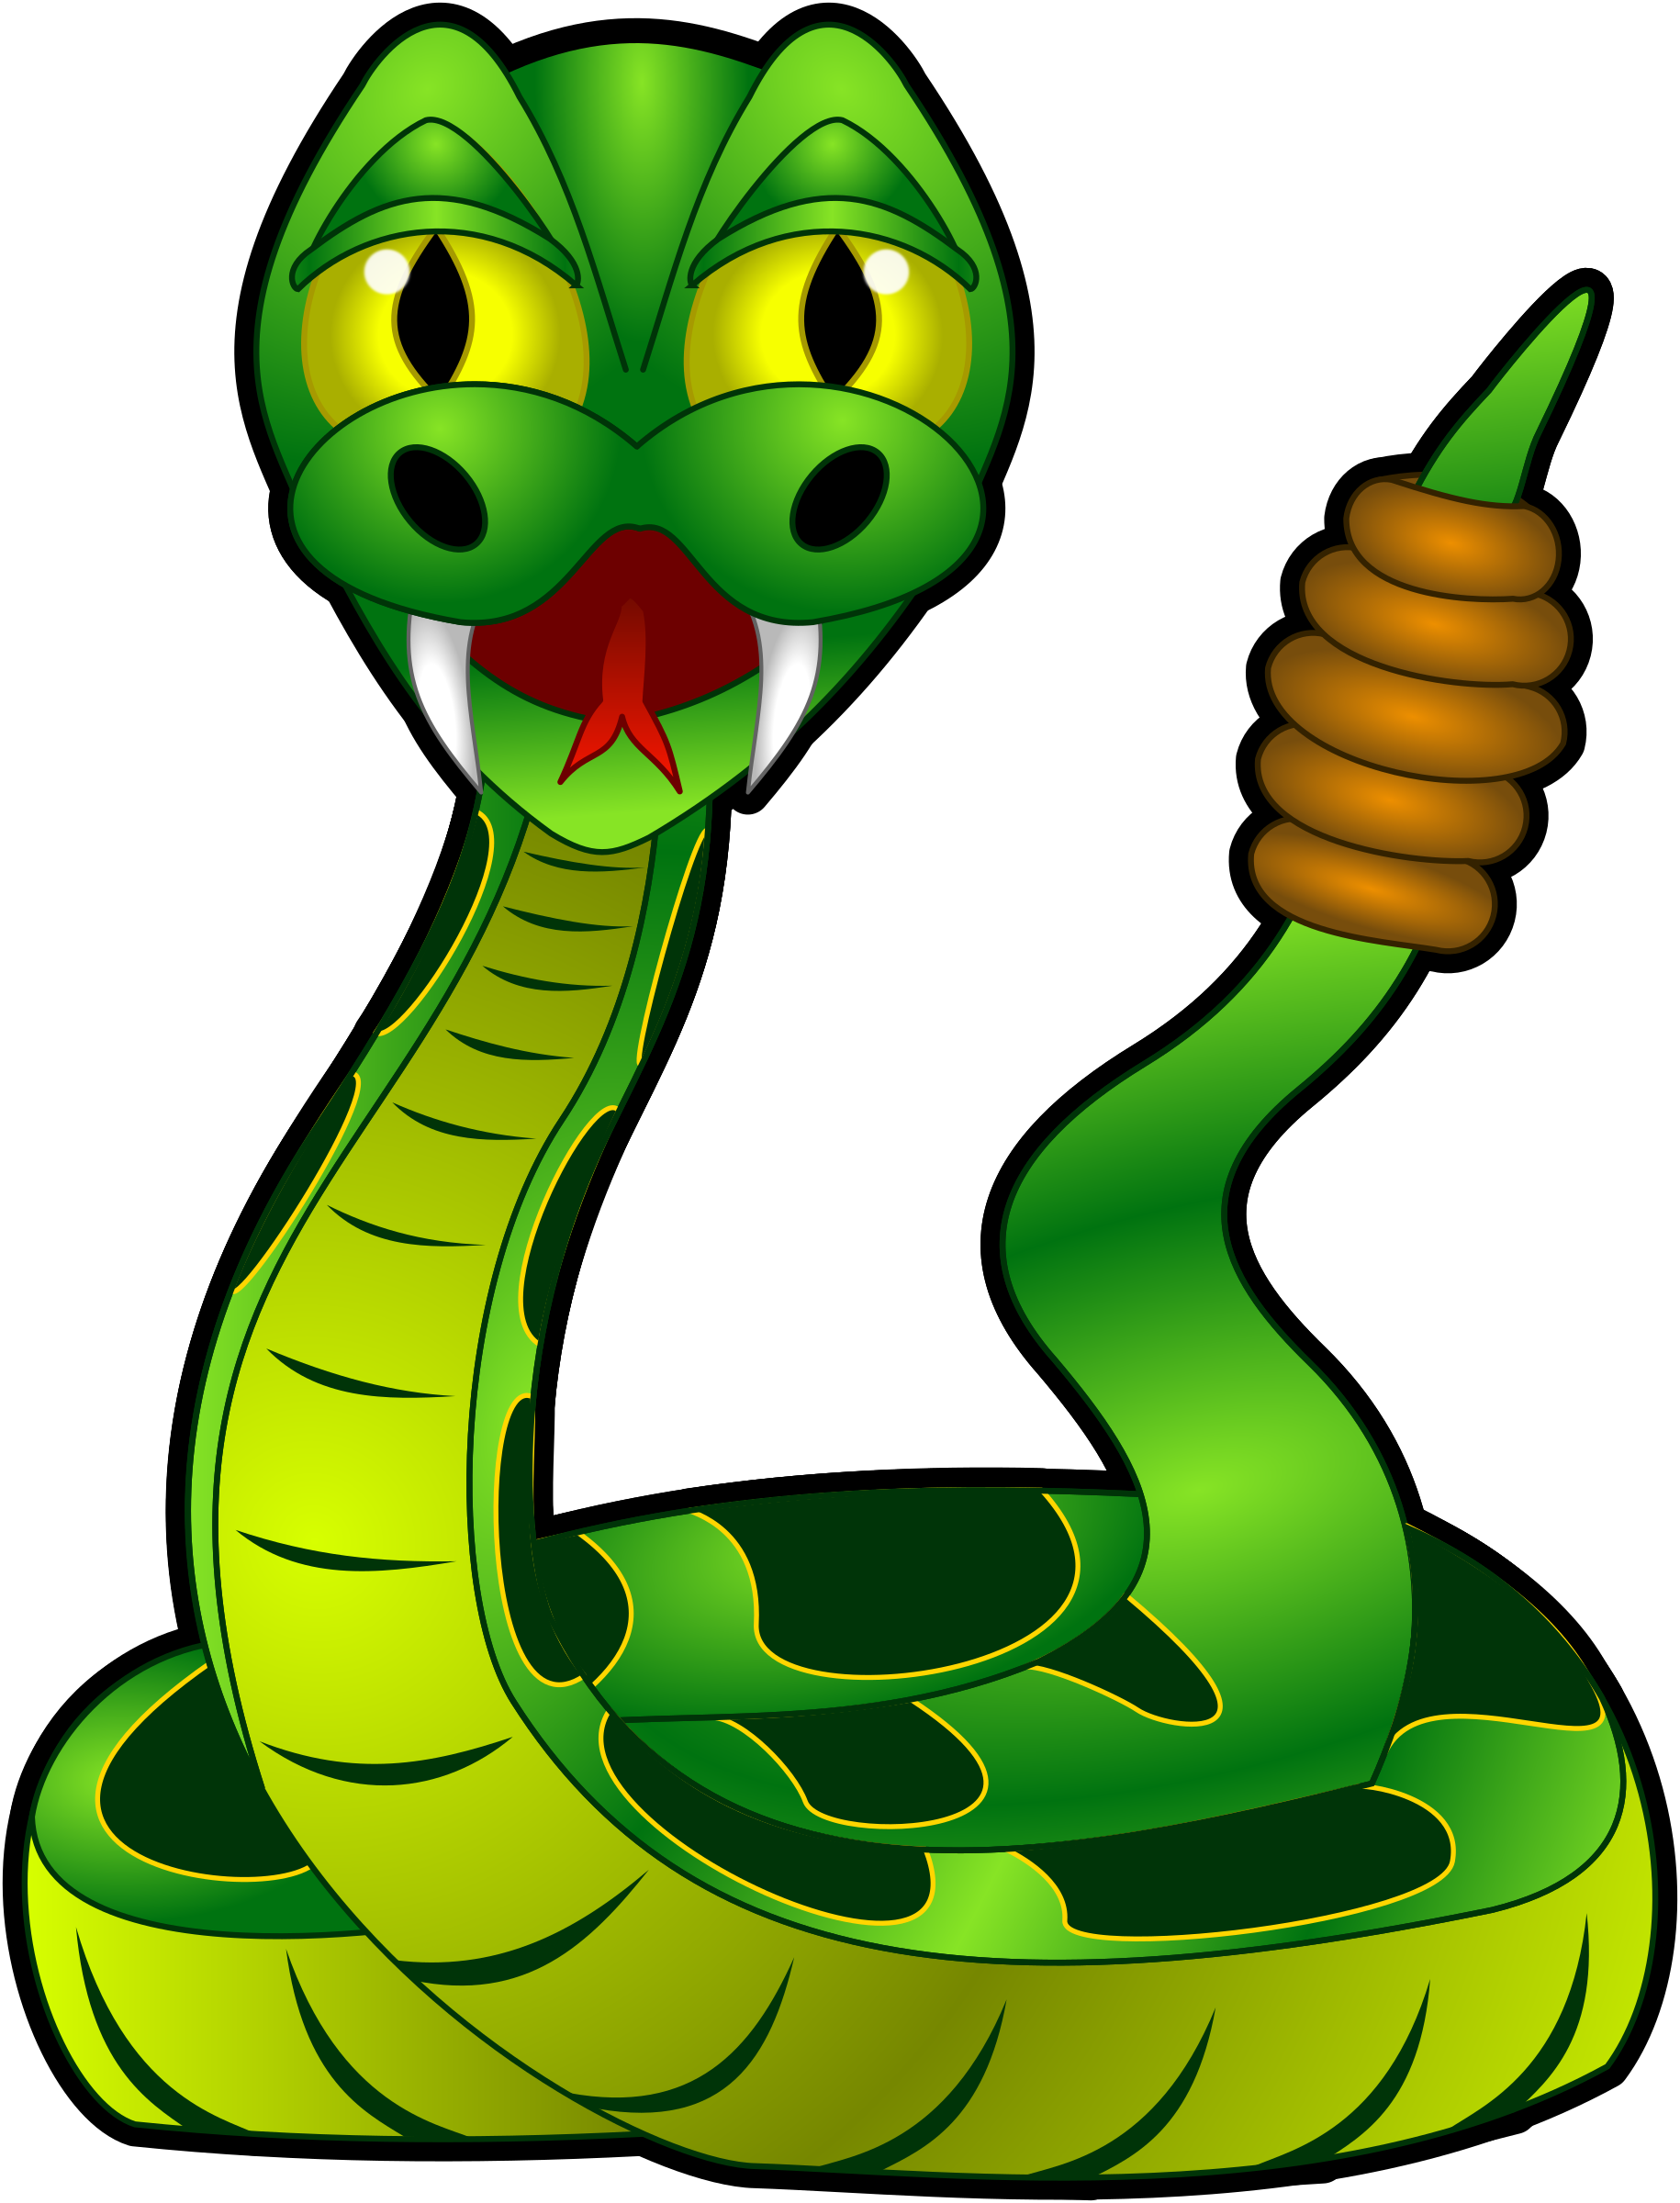 Cartoon rattlesnake by sirrob. Ostrich clipart animated